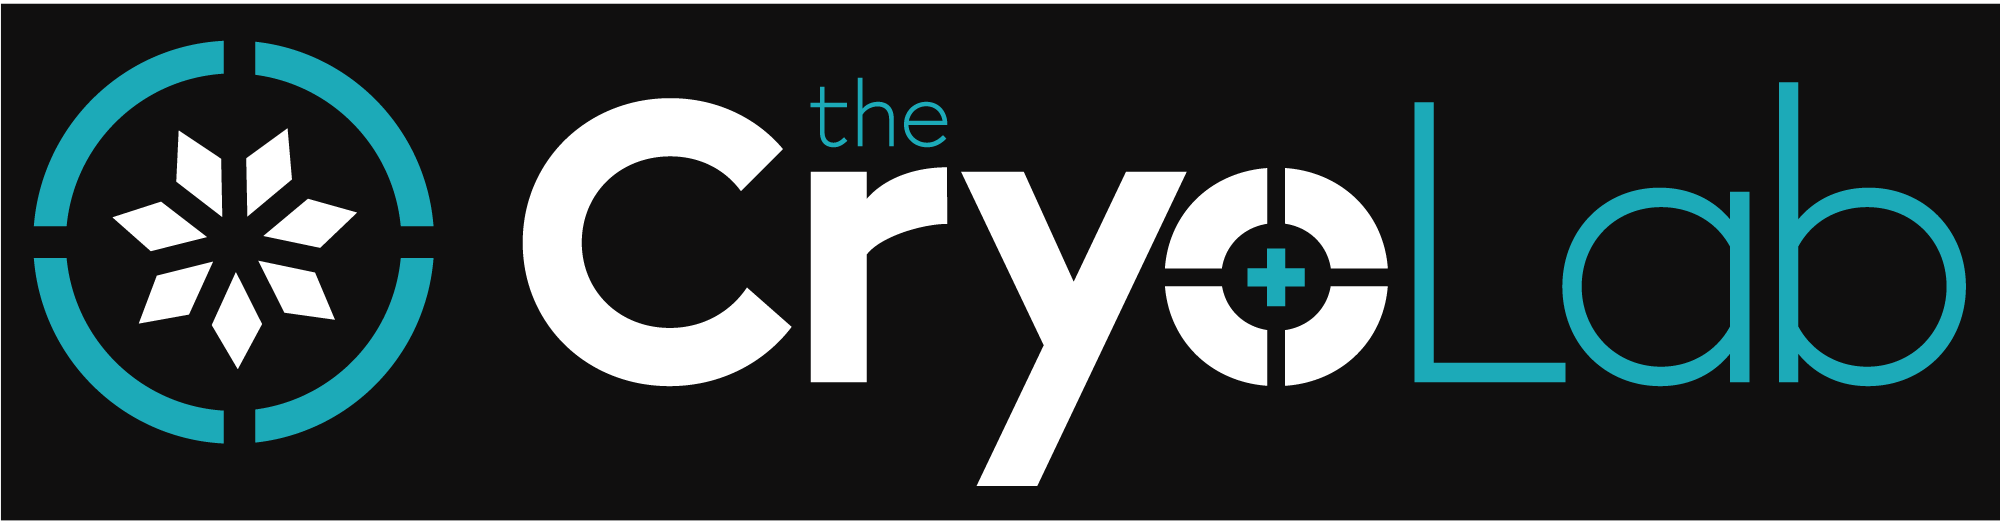 The Cyro Lab